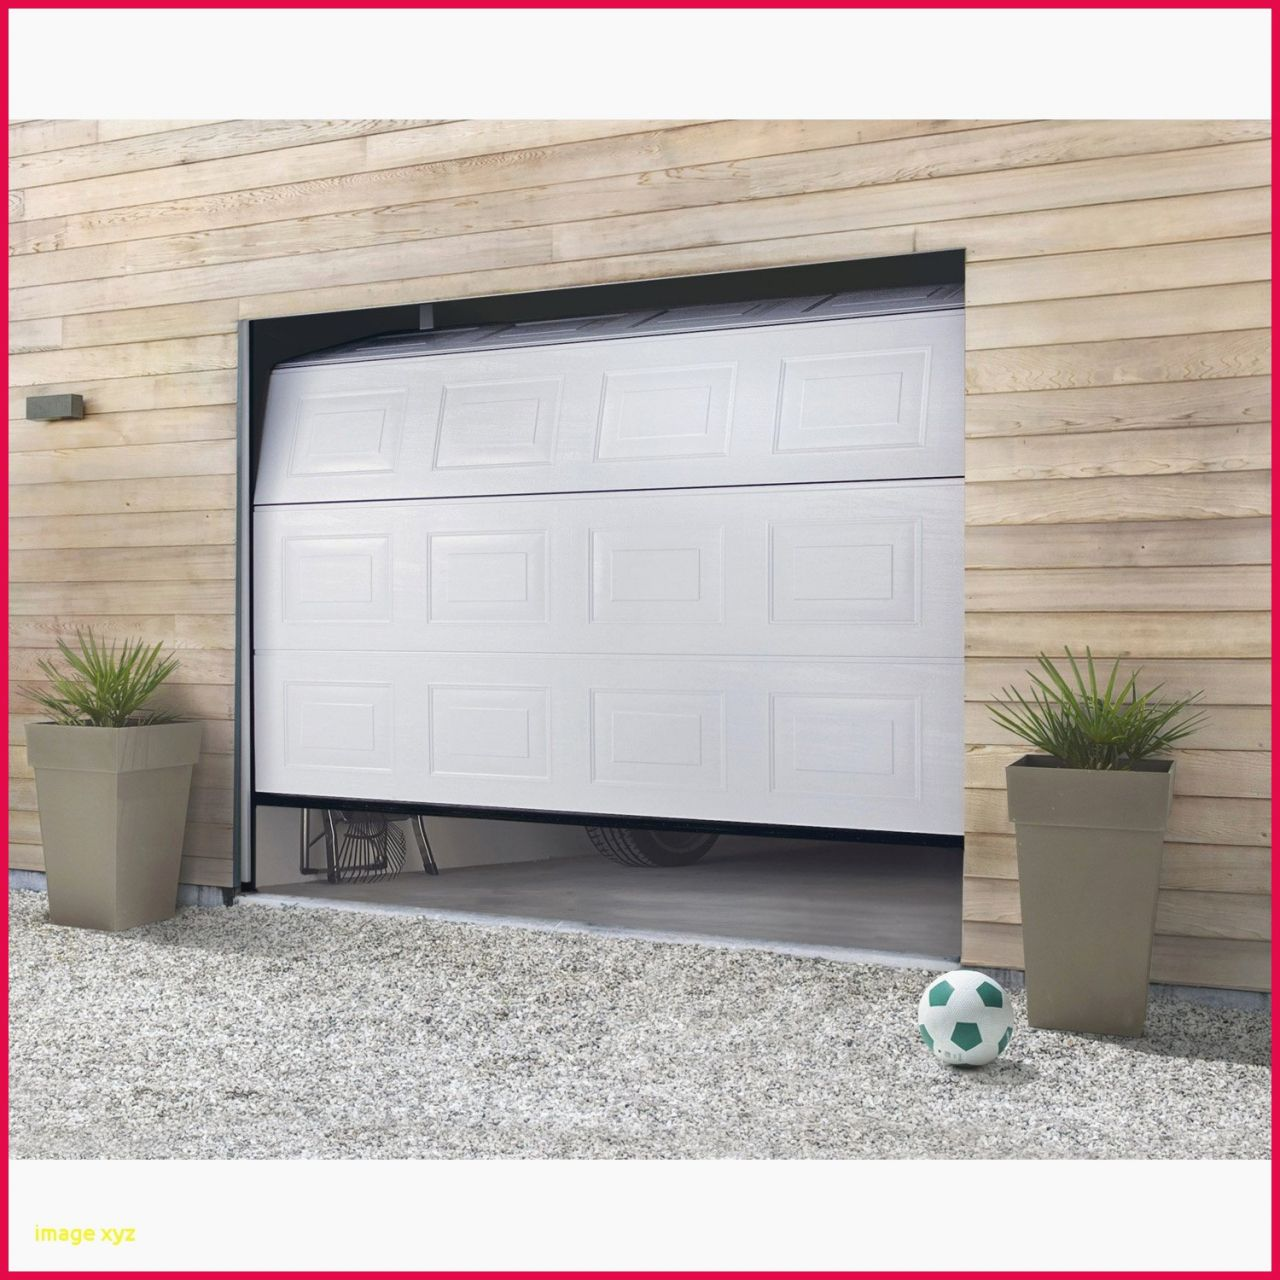 201 Isolant Porte Garage Leroy Merlin Check More At Https Www Dtvuy Info Isolant Porte Garage Leroy Merlin